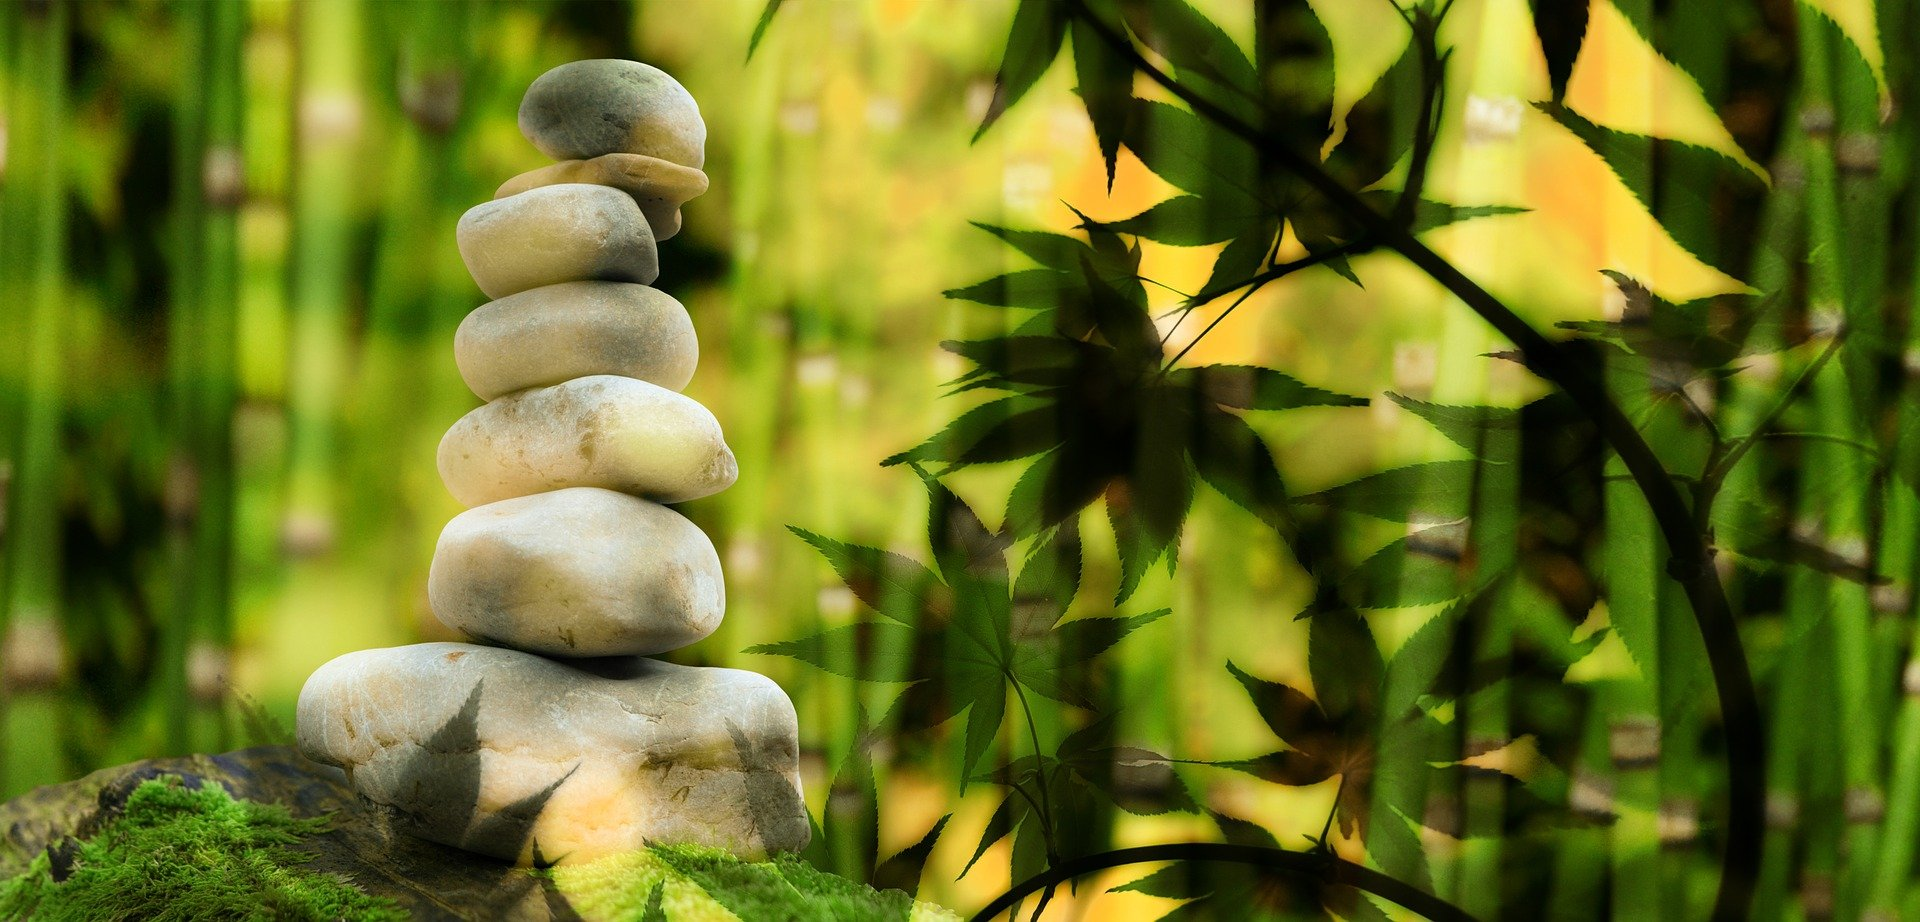 wellness, trees and stones